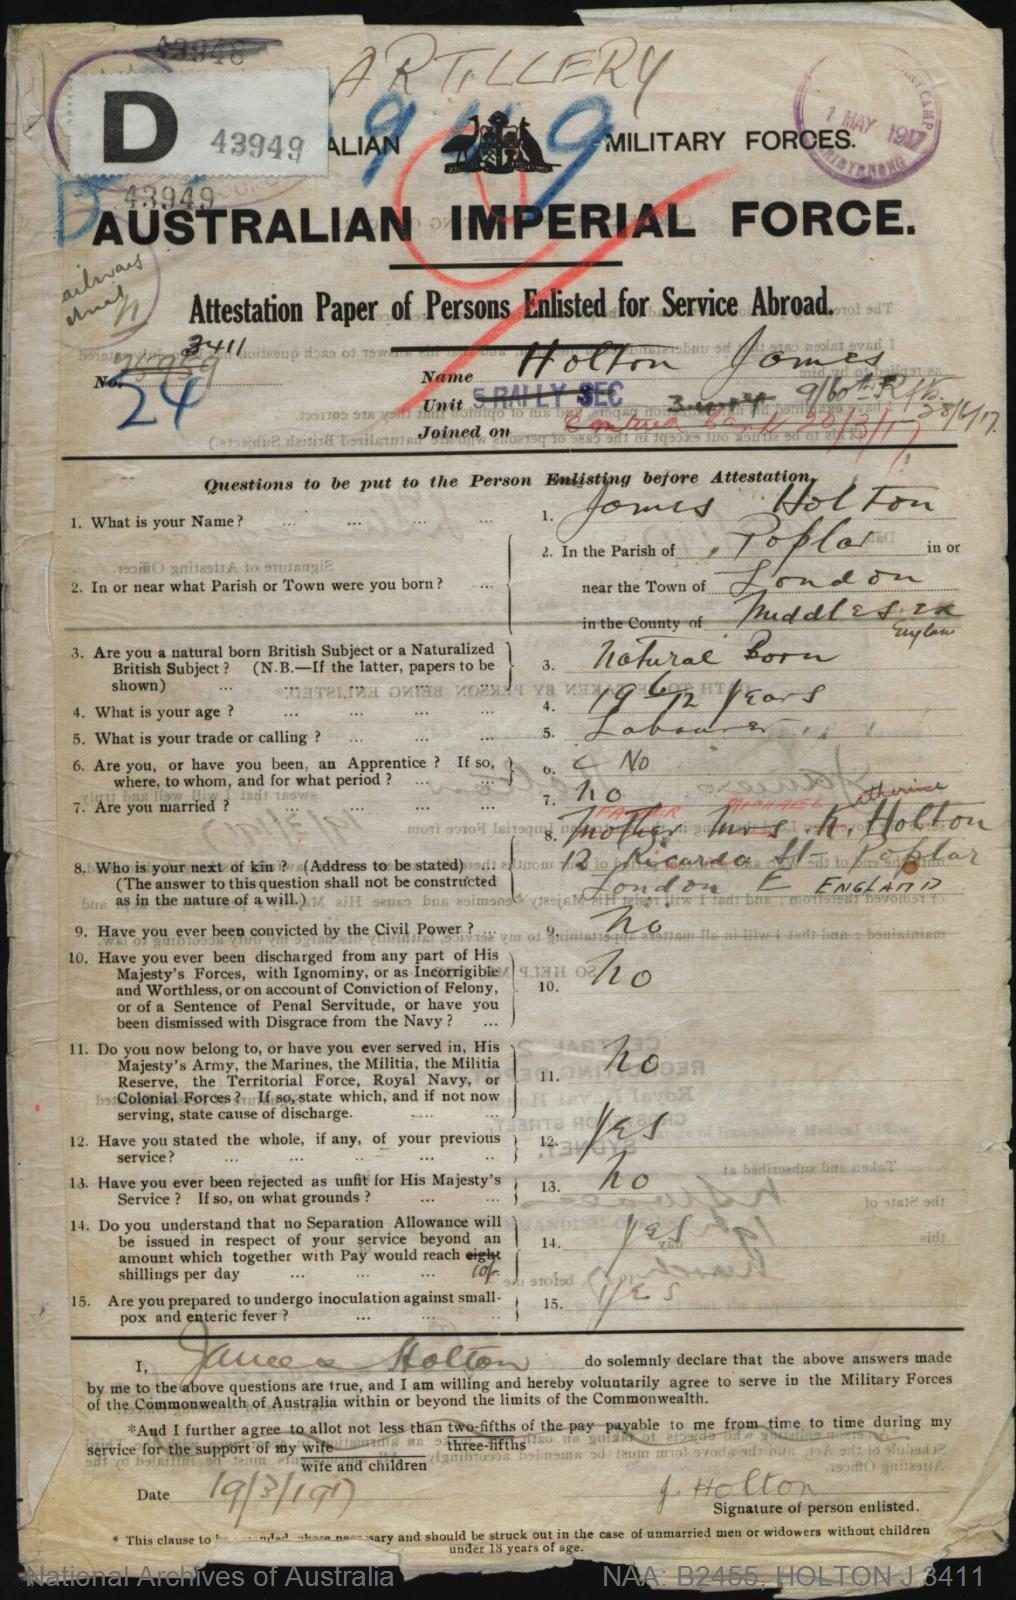 HOLTON James : Service Number - 3411 : Place of Birth - London England : Place of Enlistment - Sydney NSW : Next of Kin - (Father) HOLTON Michael